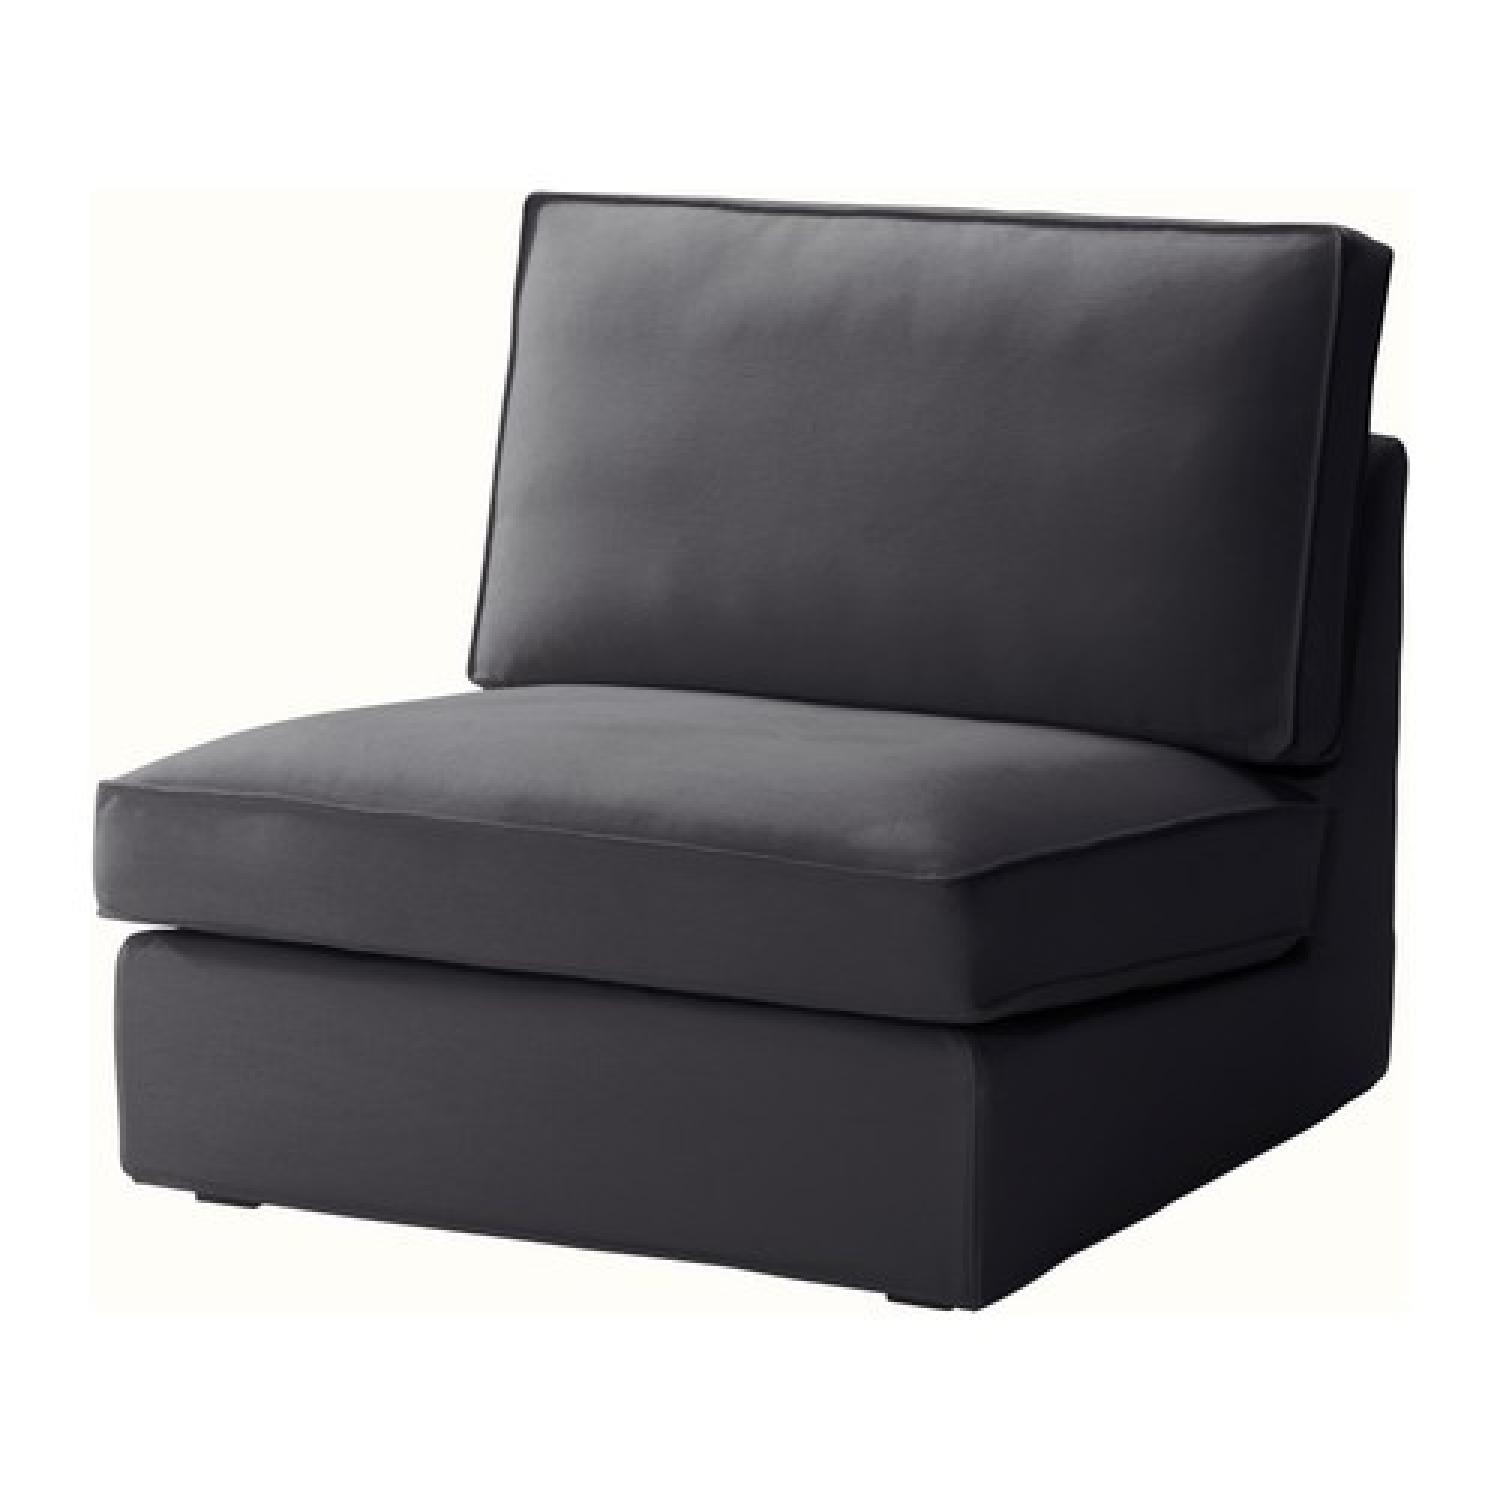 Ikea Kivik Chaise w/ One Seat Section - image-1